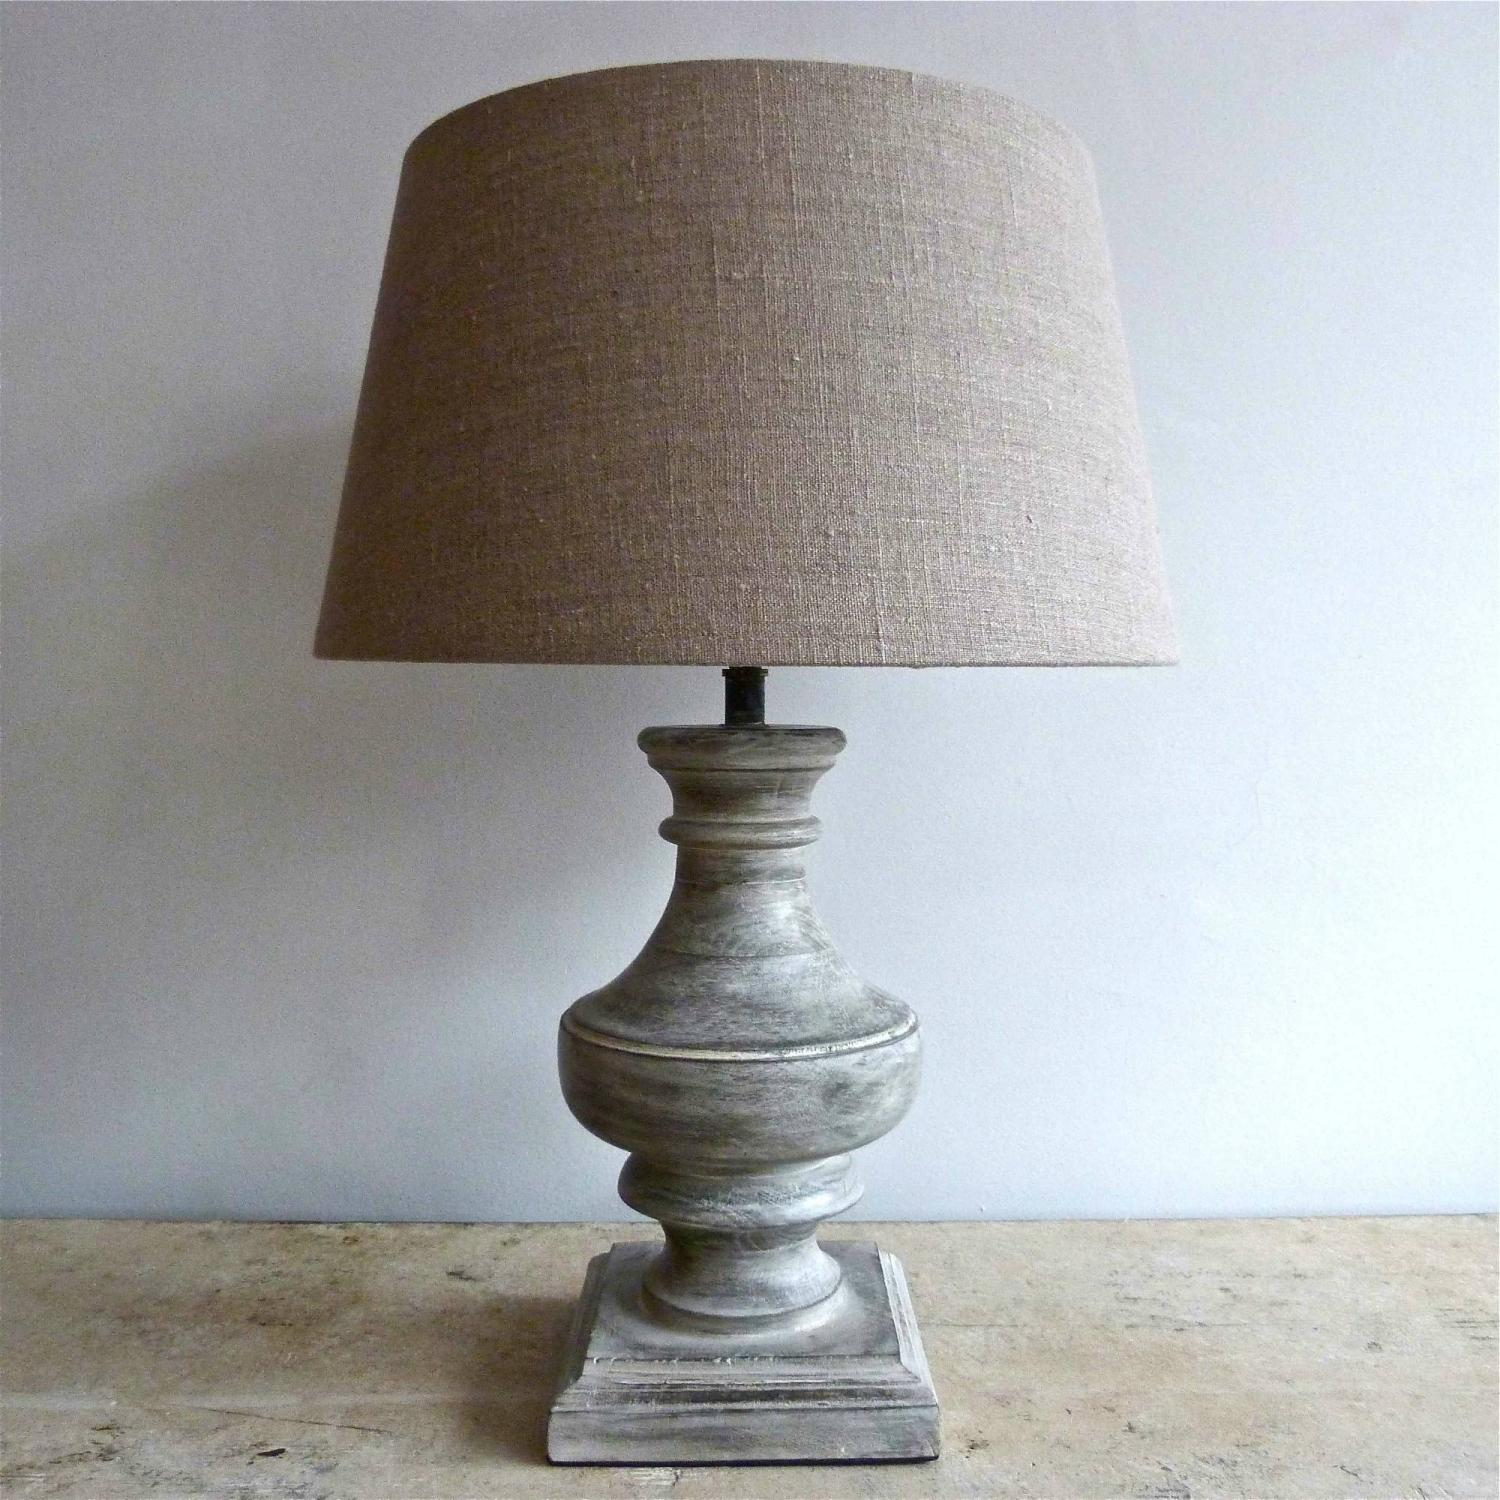 PAIR OF LIGHT GREY WOODEN TABLE LAMPS